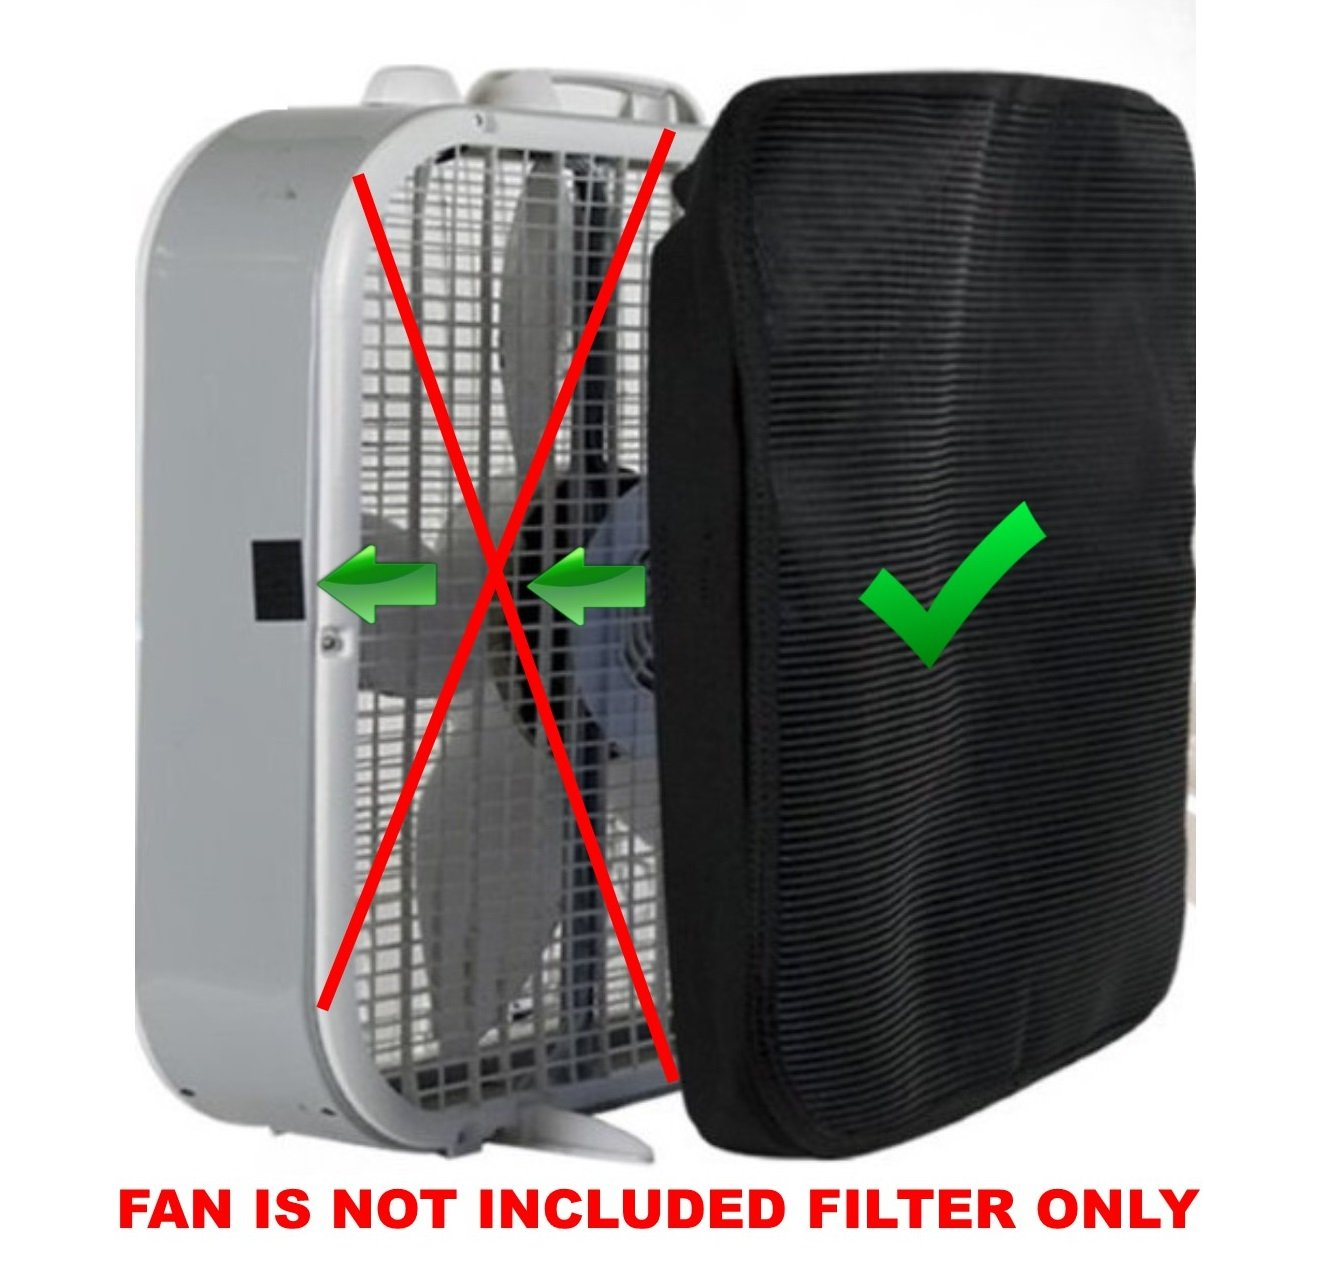 PollenTec Ultra Flo Filter - Effective at Filtering Airborne Pollen Dust Mold Spores Pet Dander Washable Keeps Your Fan Clean and Lasting Longer USA - for Holmes Box Fan Model HBF2010A-WM